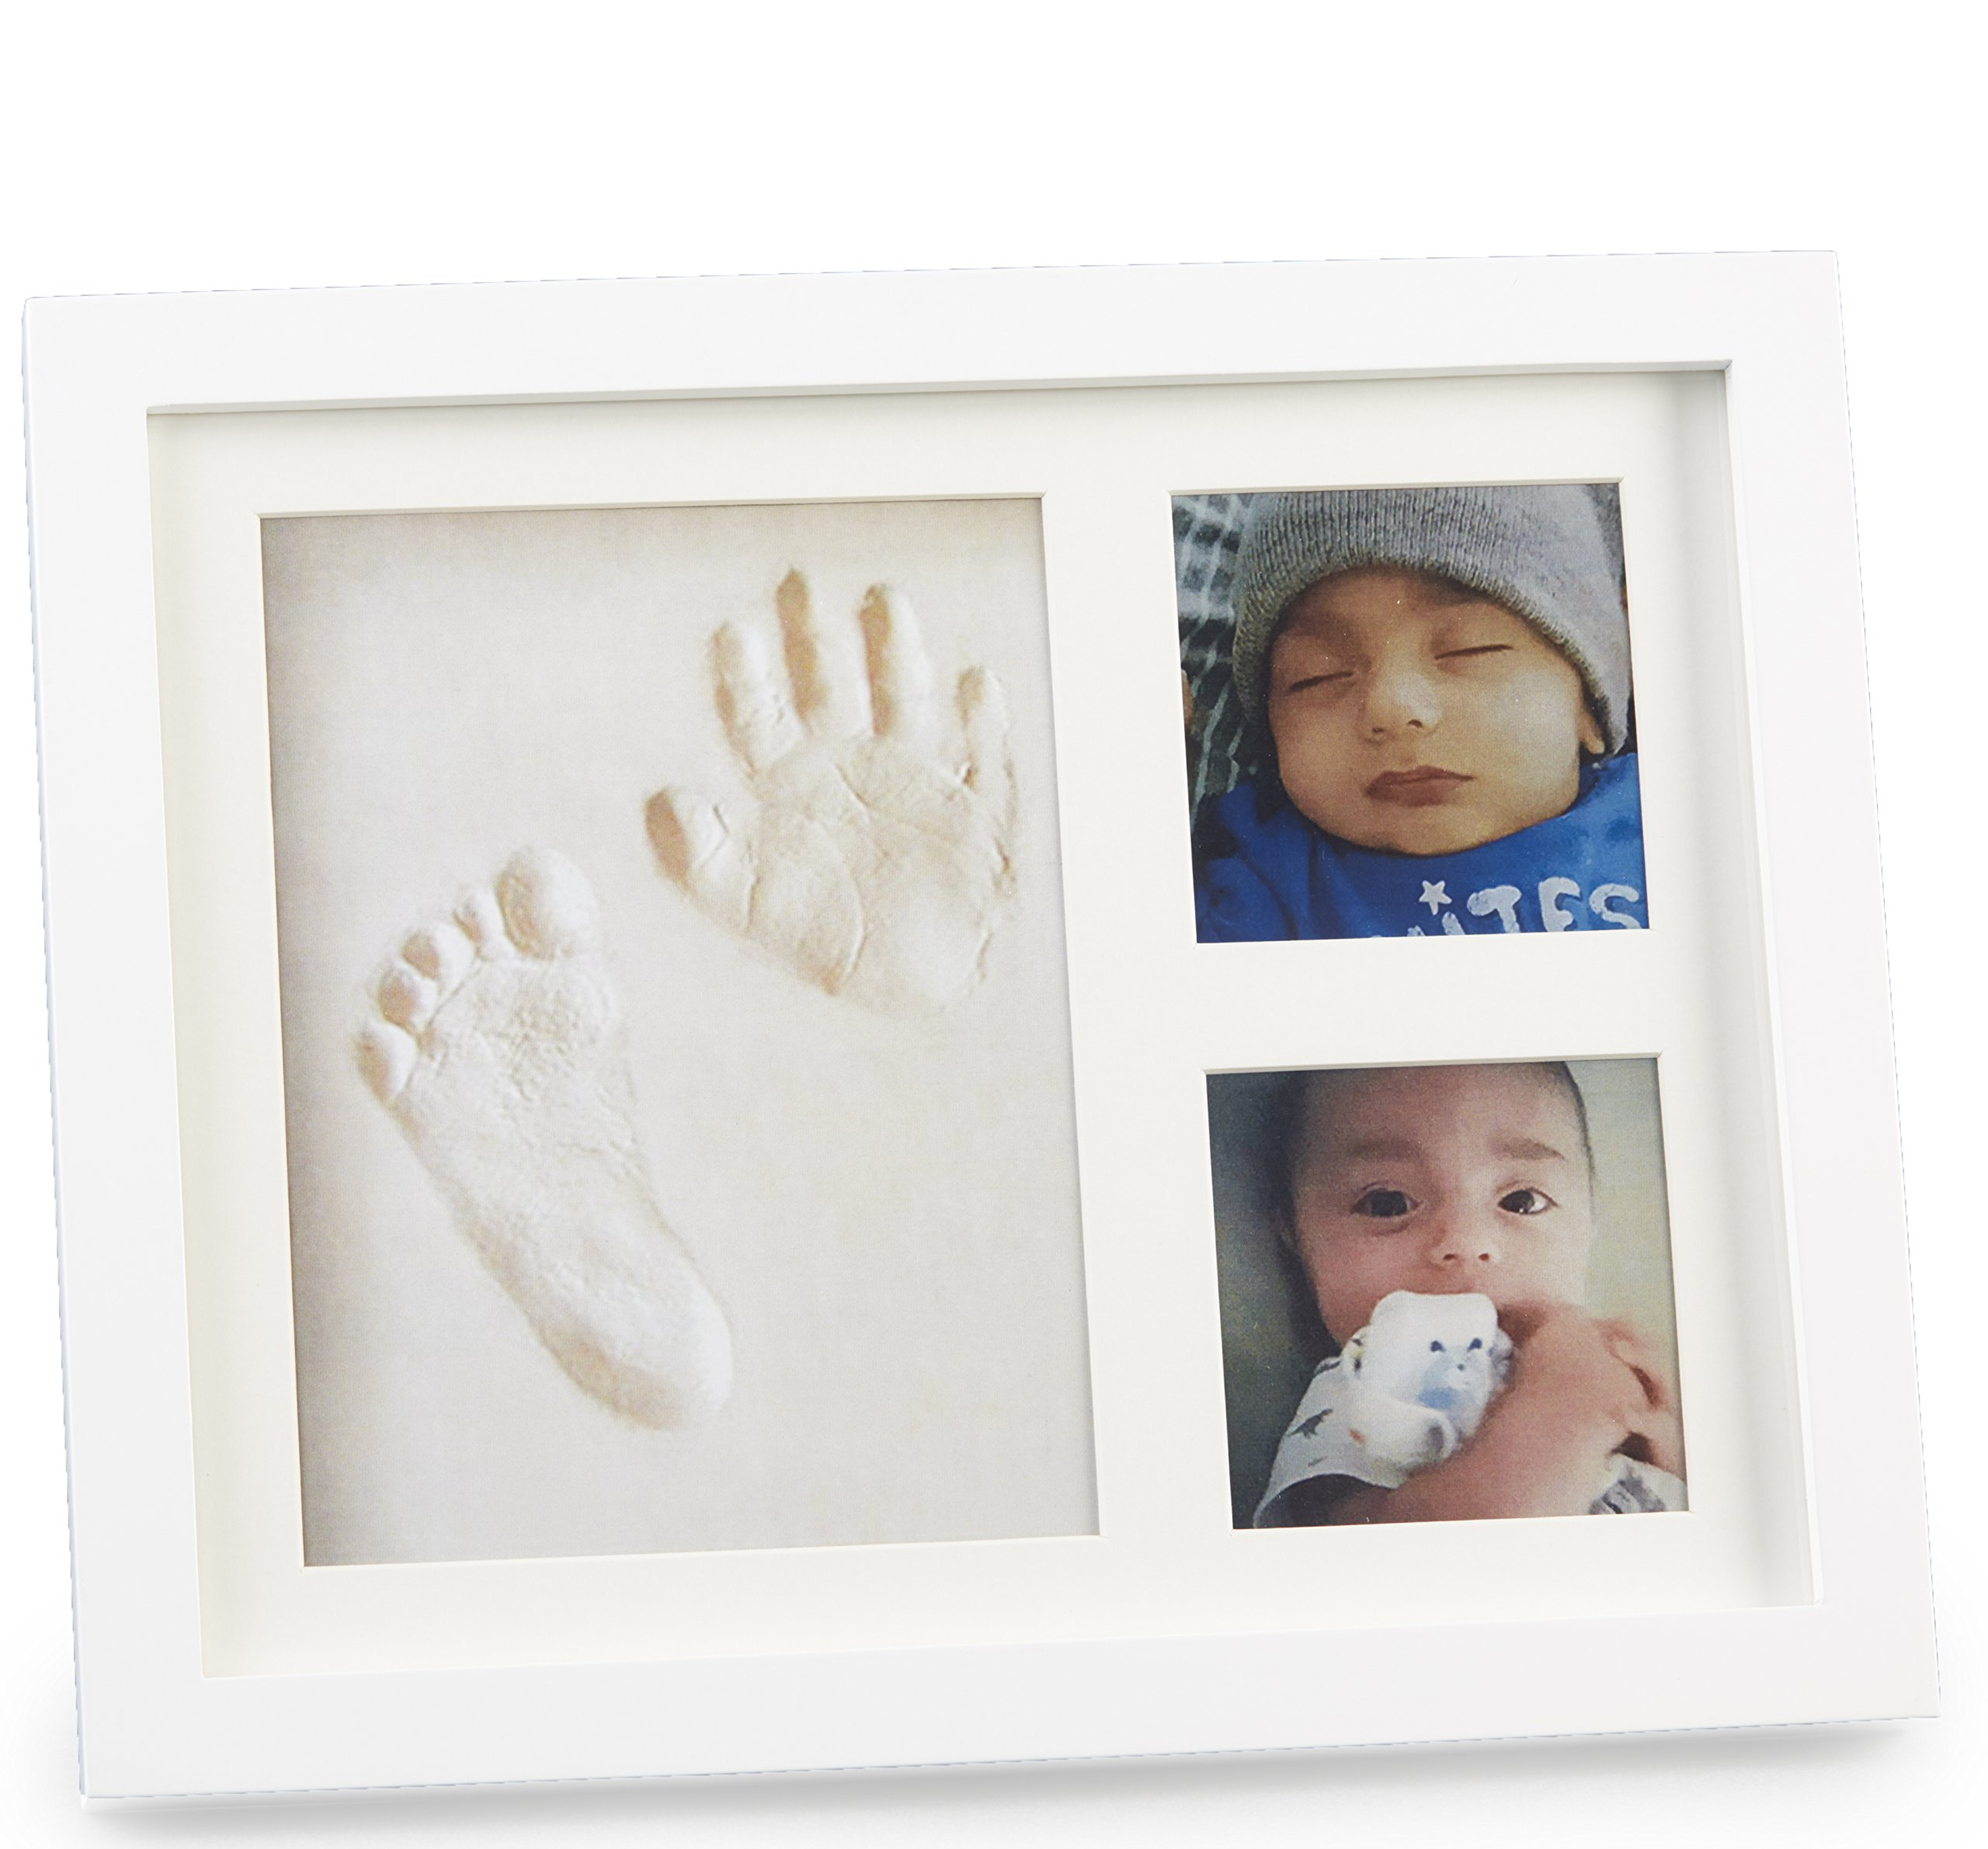 Baby Handprint Picture Frame Clay Kit for Newborn Girls and Boys by Baby Yei - The Photo Frames are Fully Painted White-Prevents Mold Creation-Safe for Treasuring your Angel's First Precious Memories by Baby Yei